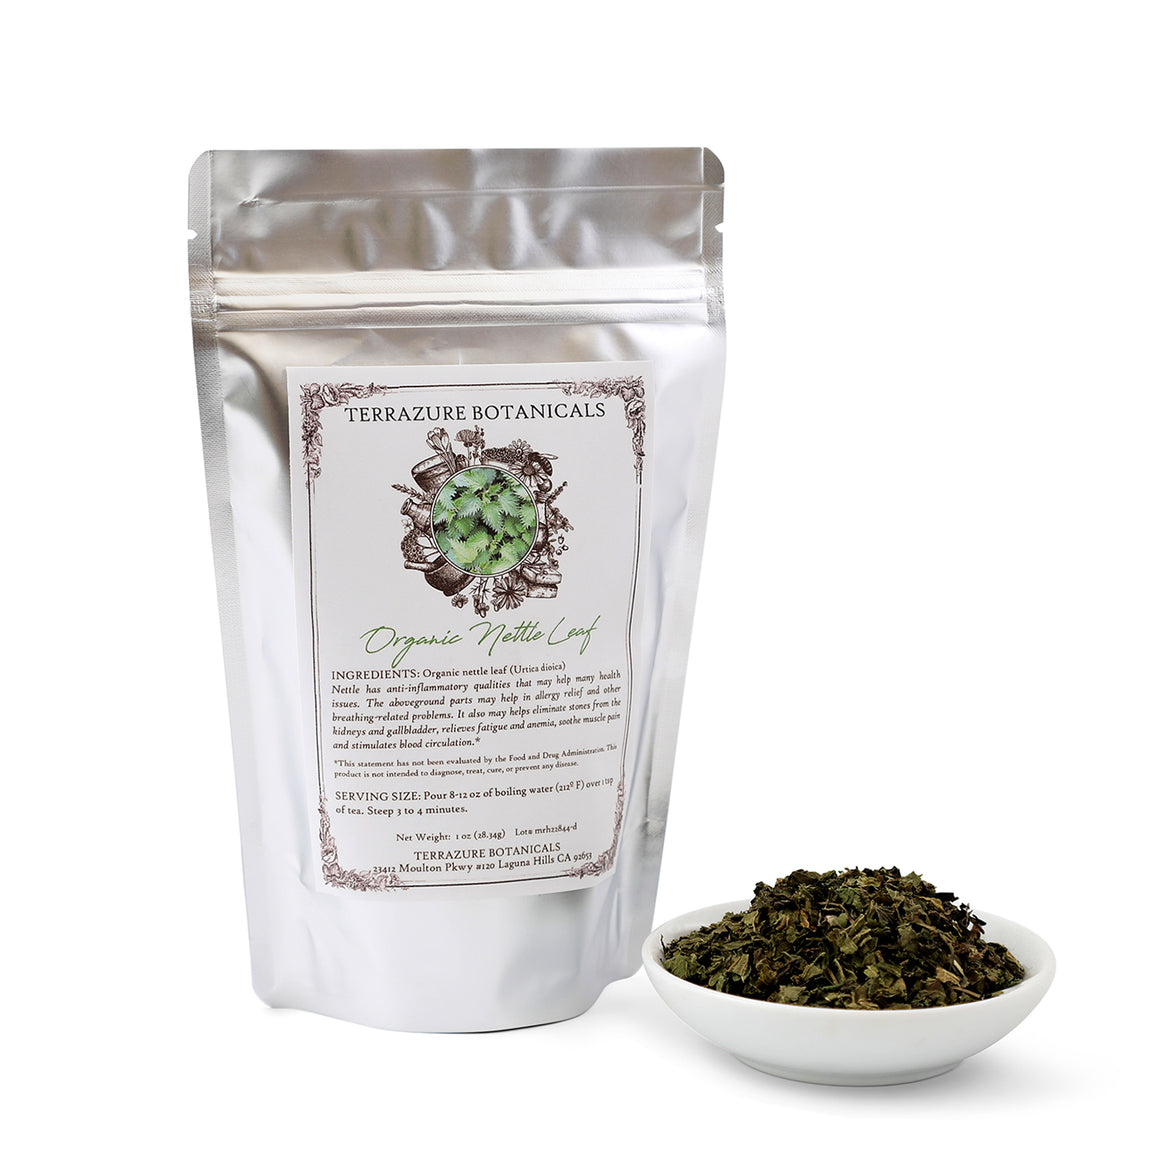 NETTLE LEAF Organic Bulk Herbal Tea